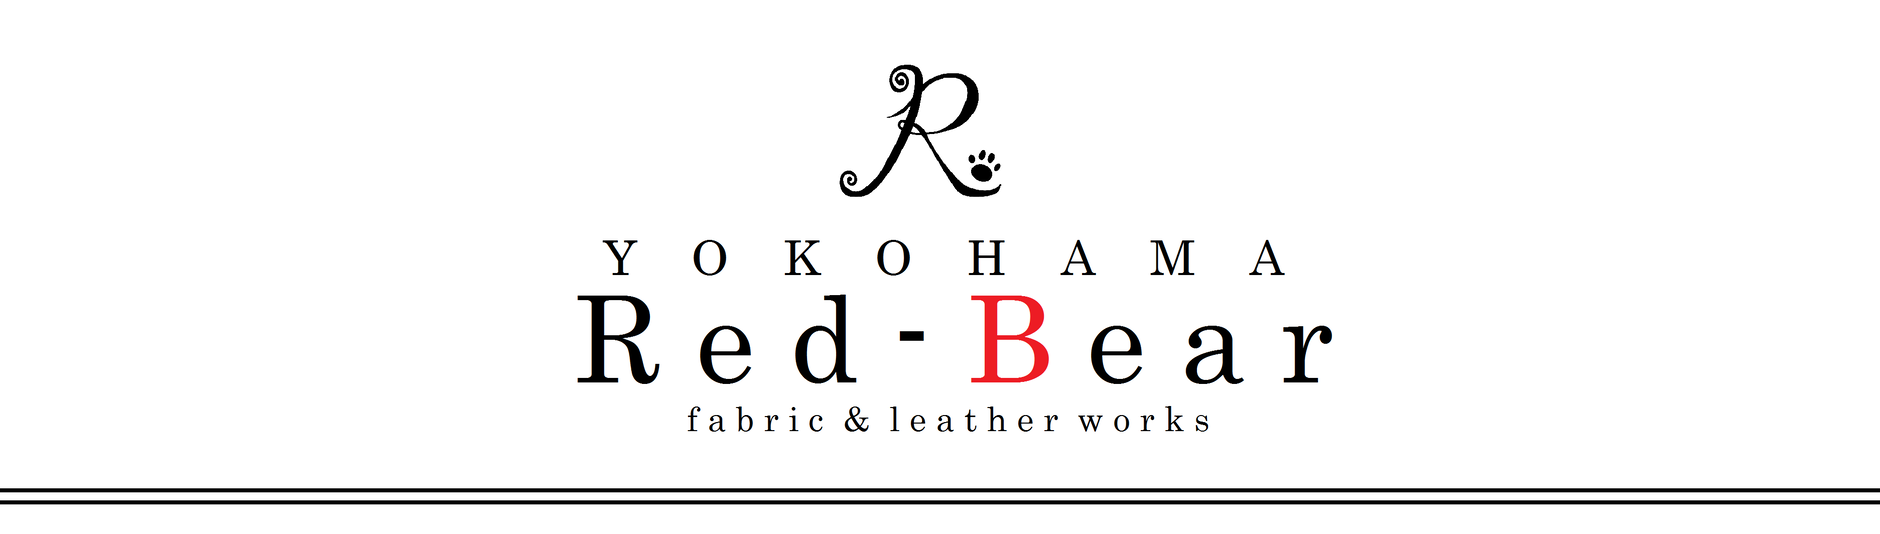 Yokohama Red-Bear fabric & leather works